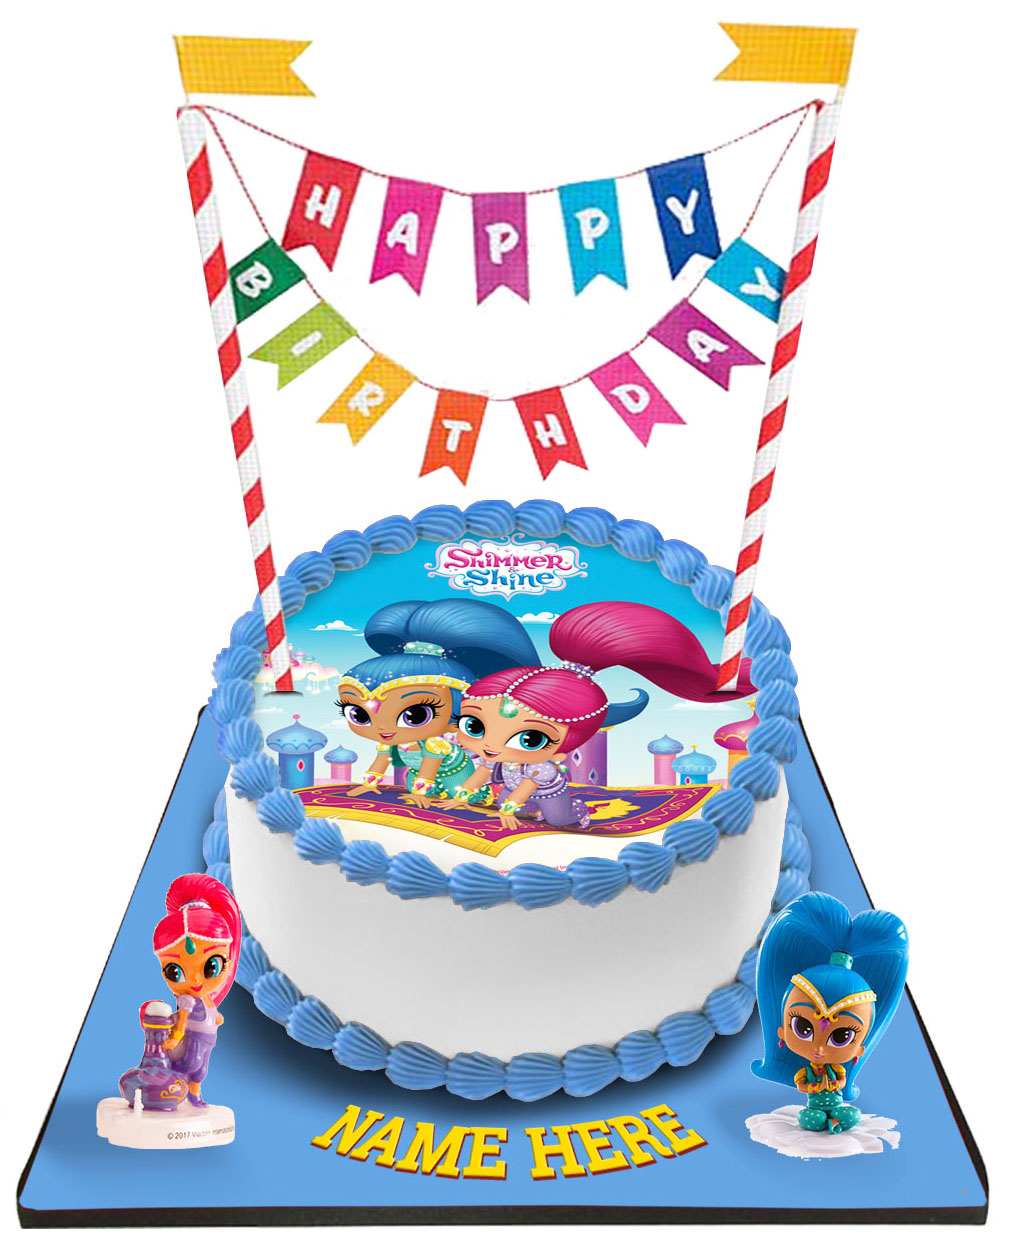 Shimmer & Shine Cake with Happy Birthday Bunting & Toppers